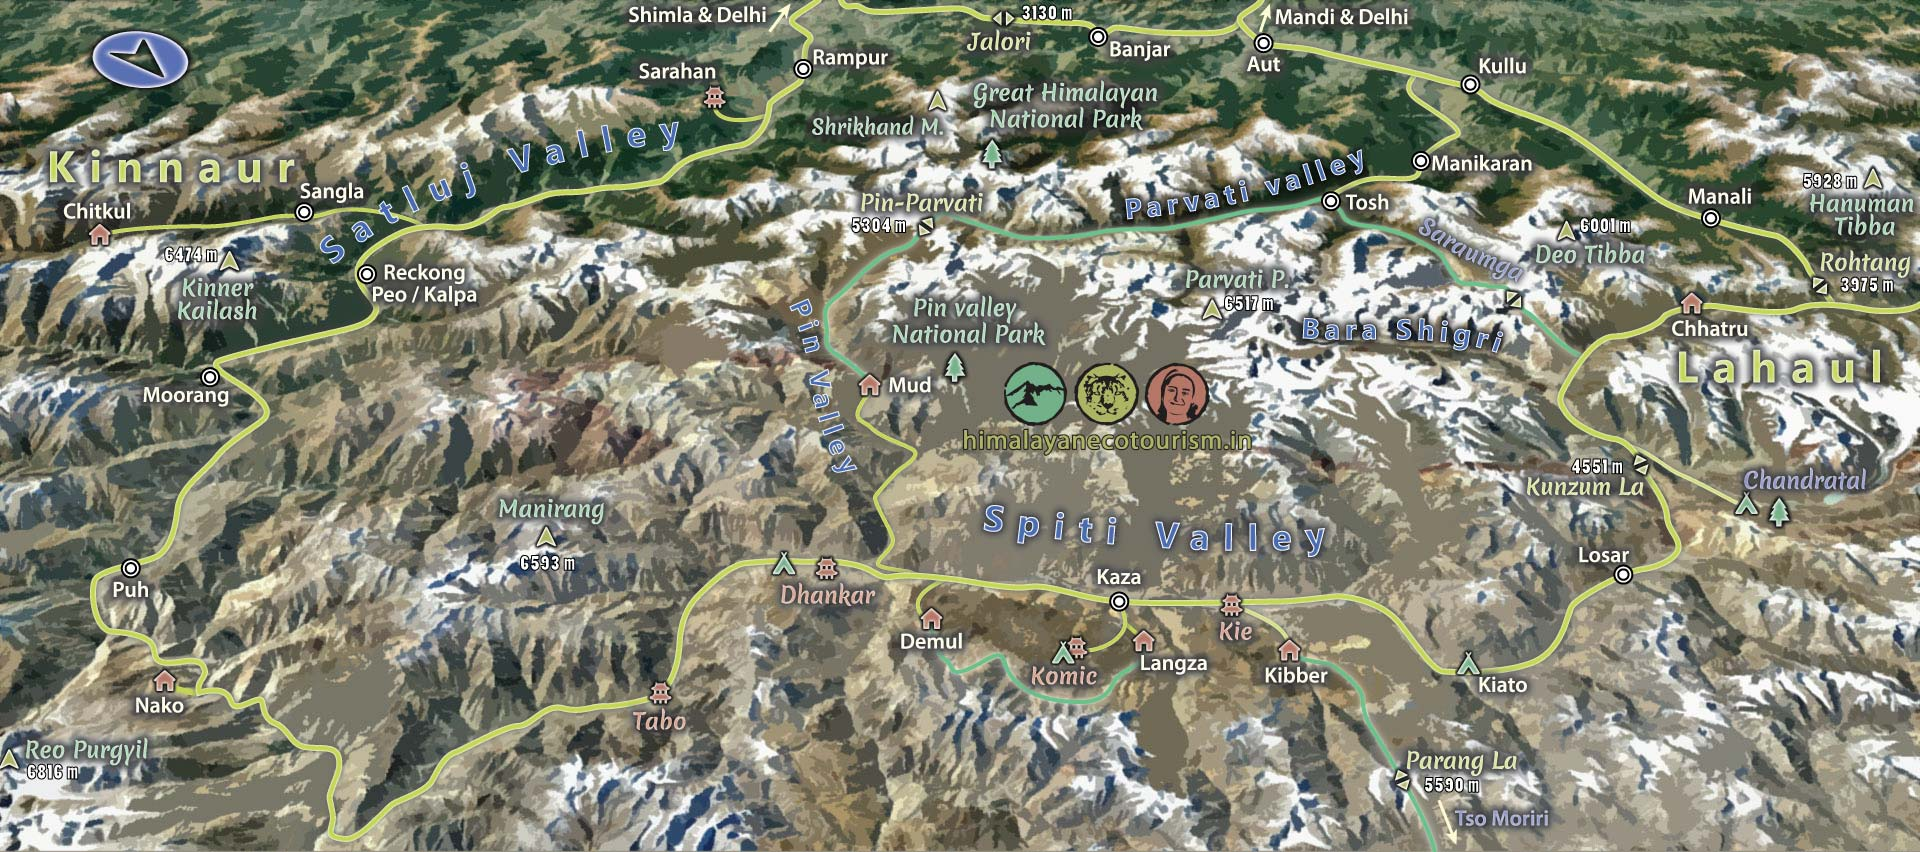 Spiti valley map